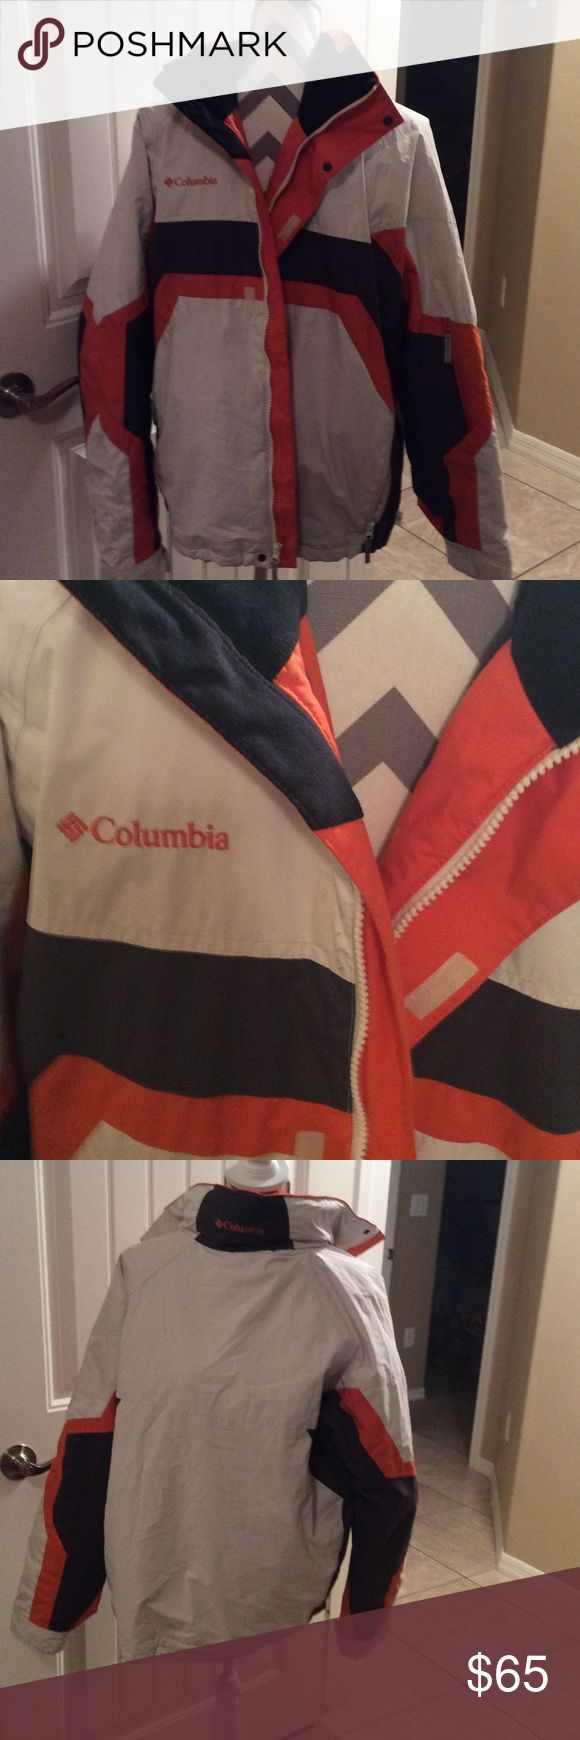 Mens sizemedium.  Columbia sportswear company coat Columbia  sportswear company.  Size medium   Has a hood that. Fits. Under. Collar 2 zipper pockets in front of coat Columbia Jackets & Coats Ski & Snowboard